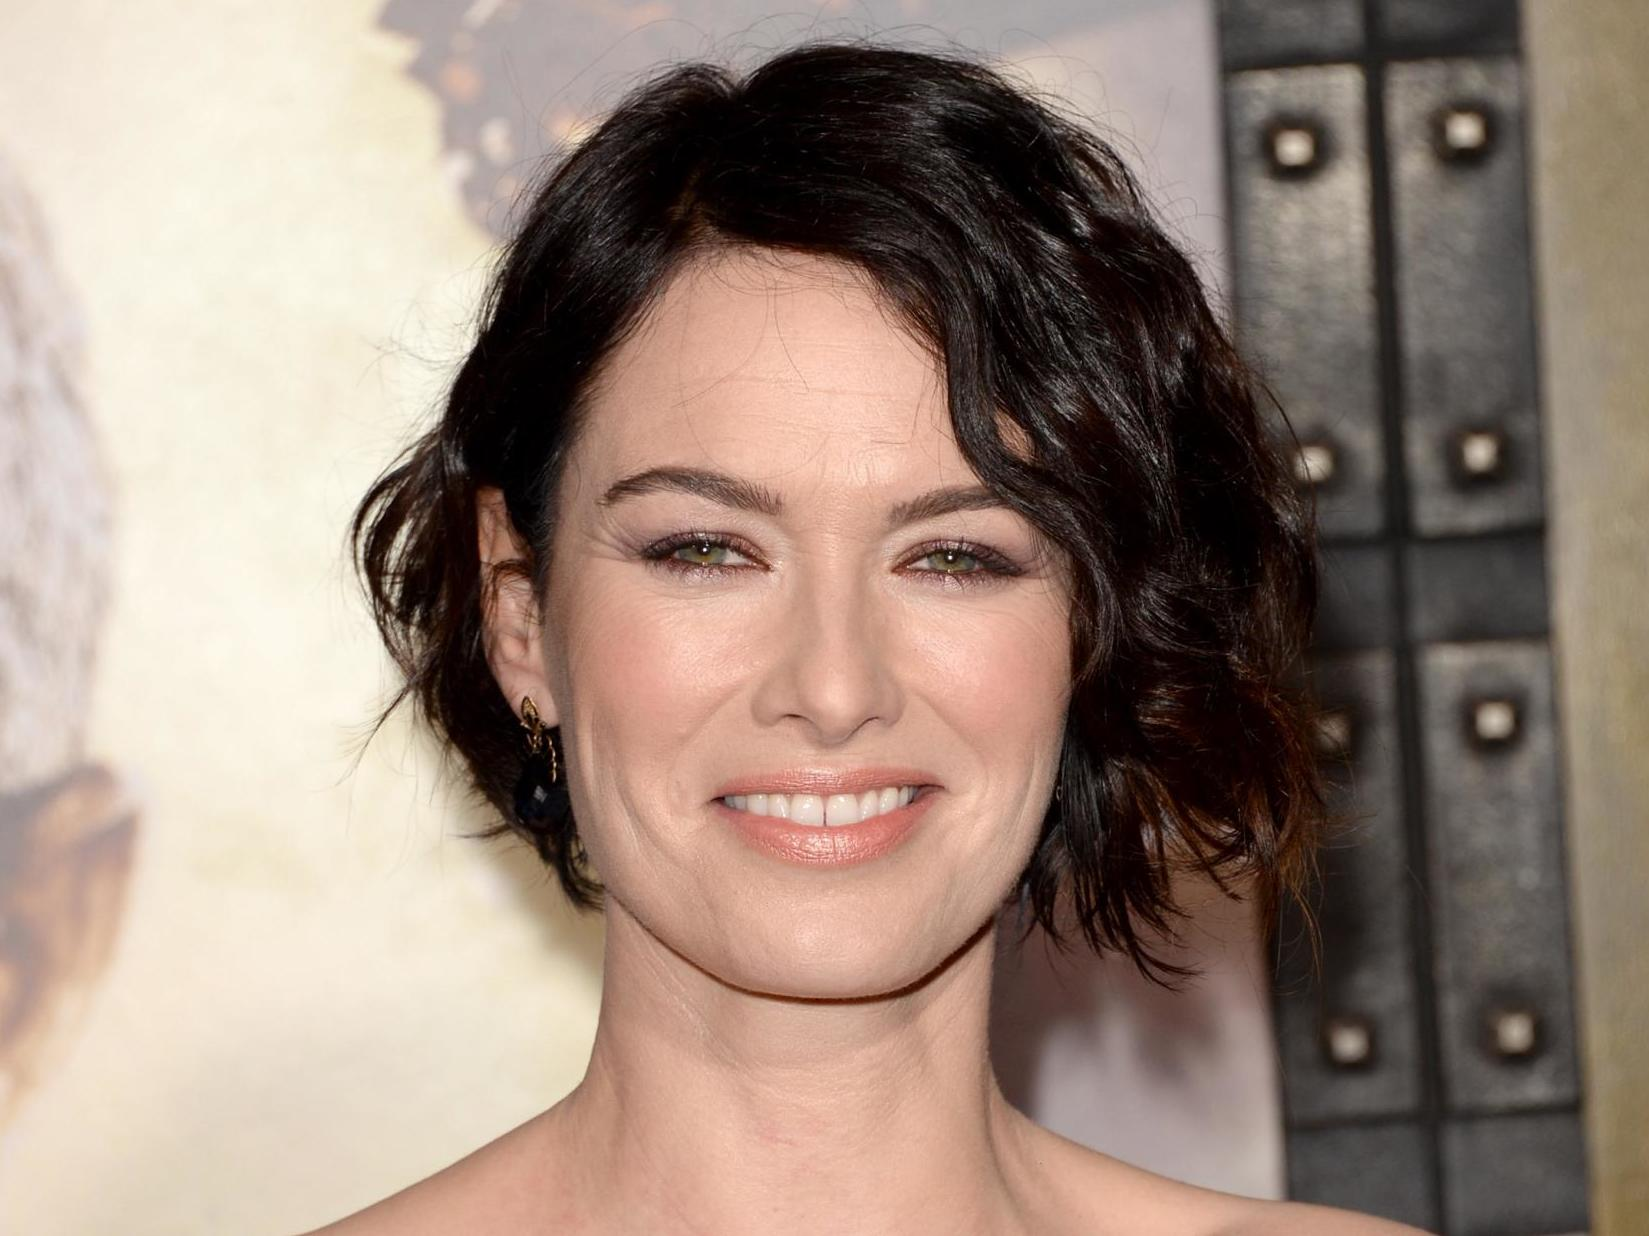 Game of Thrones star Lena Headey says refusing sex with Weinstein hurt her career 'for a decade'